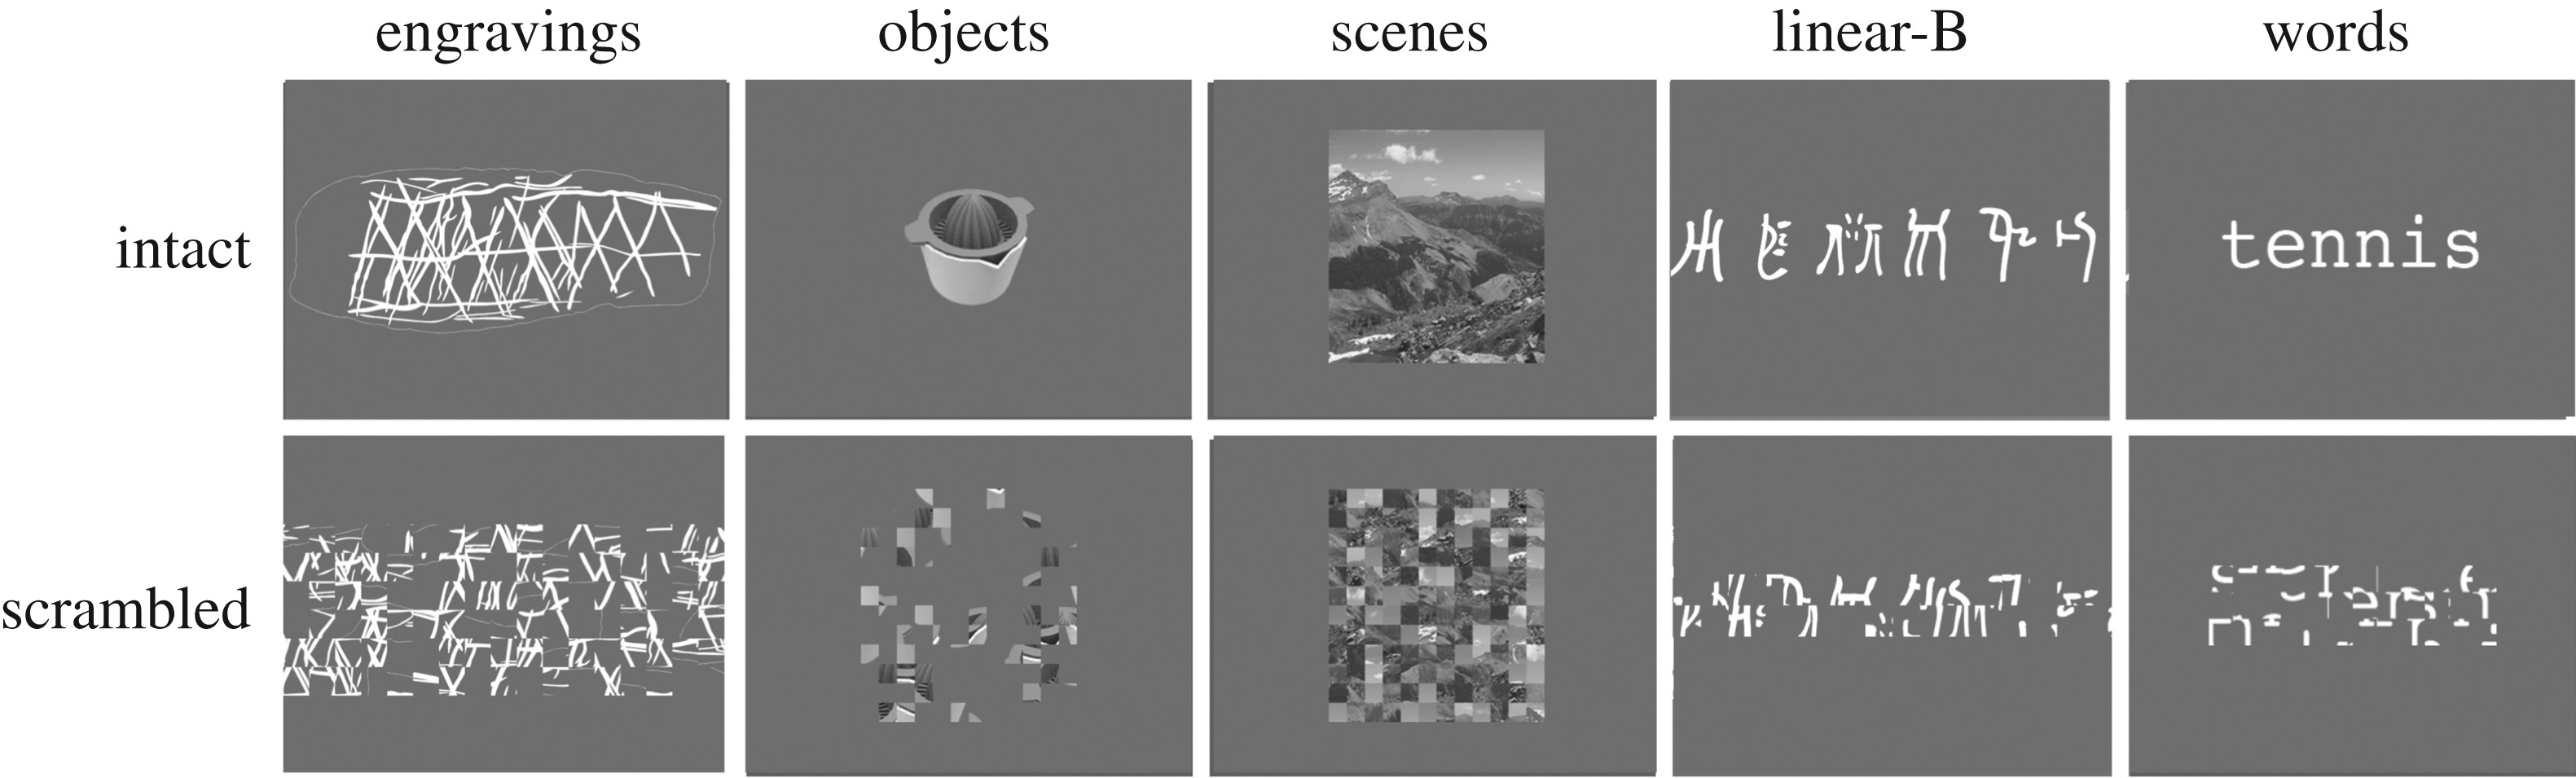 Neuroimaging supports the representational nature of the